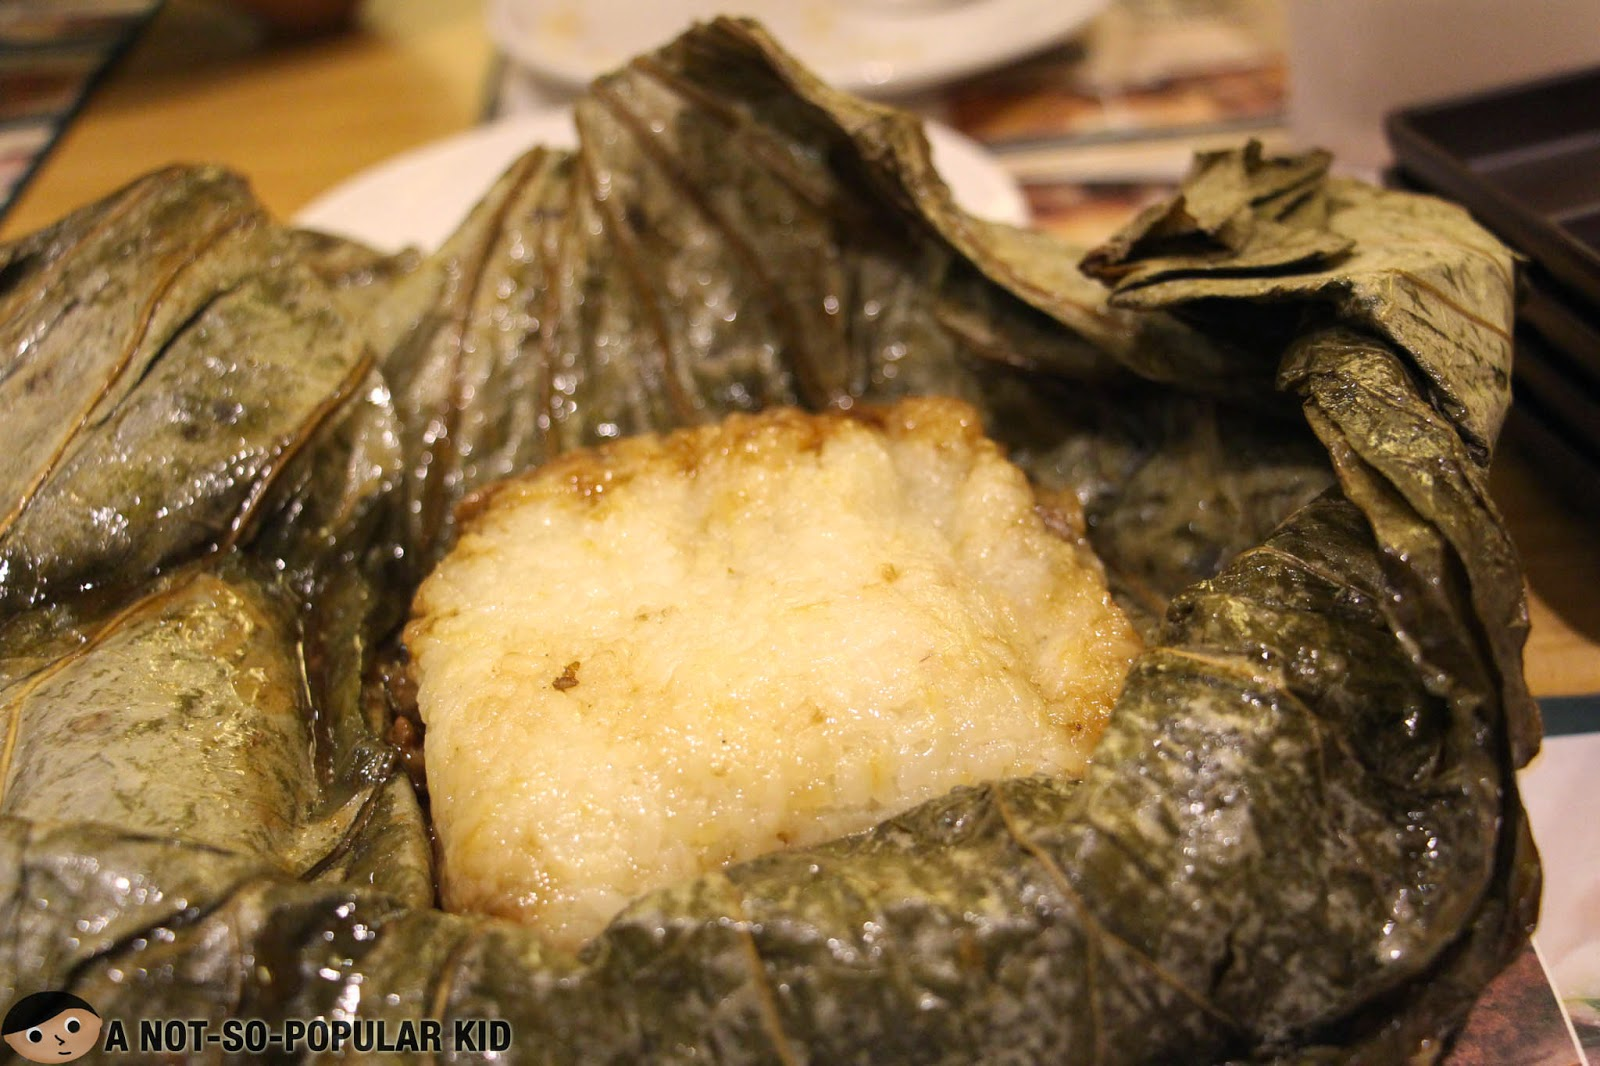 Unwrapped Glutinous Rice of Tim Ho Wan